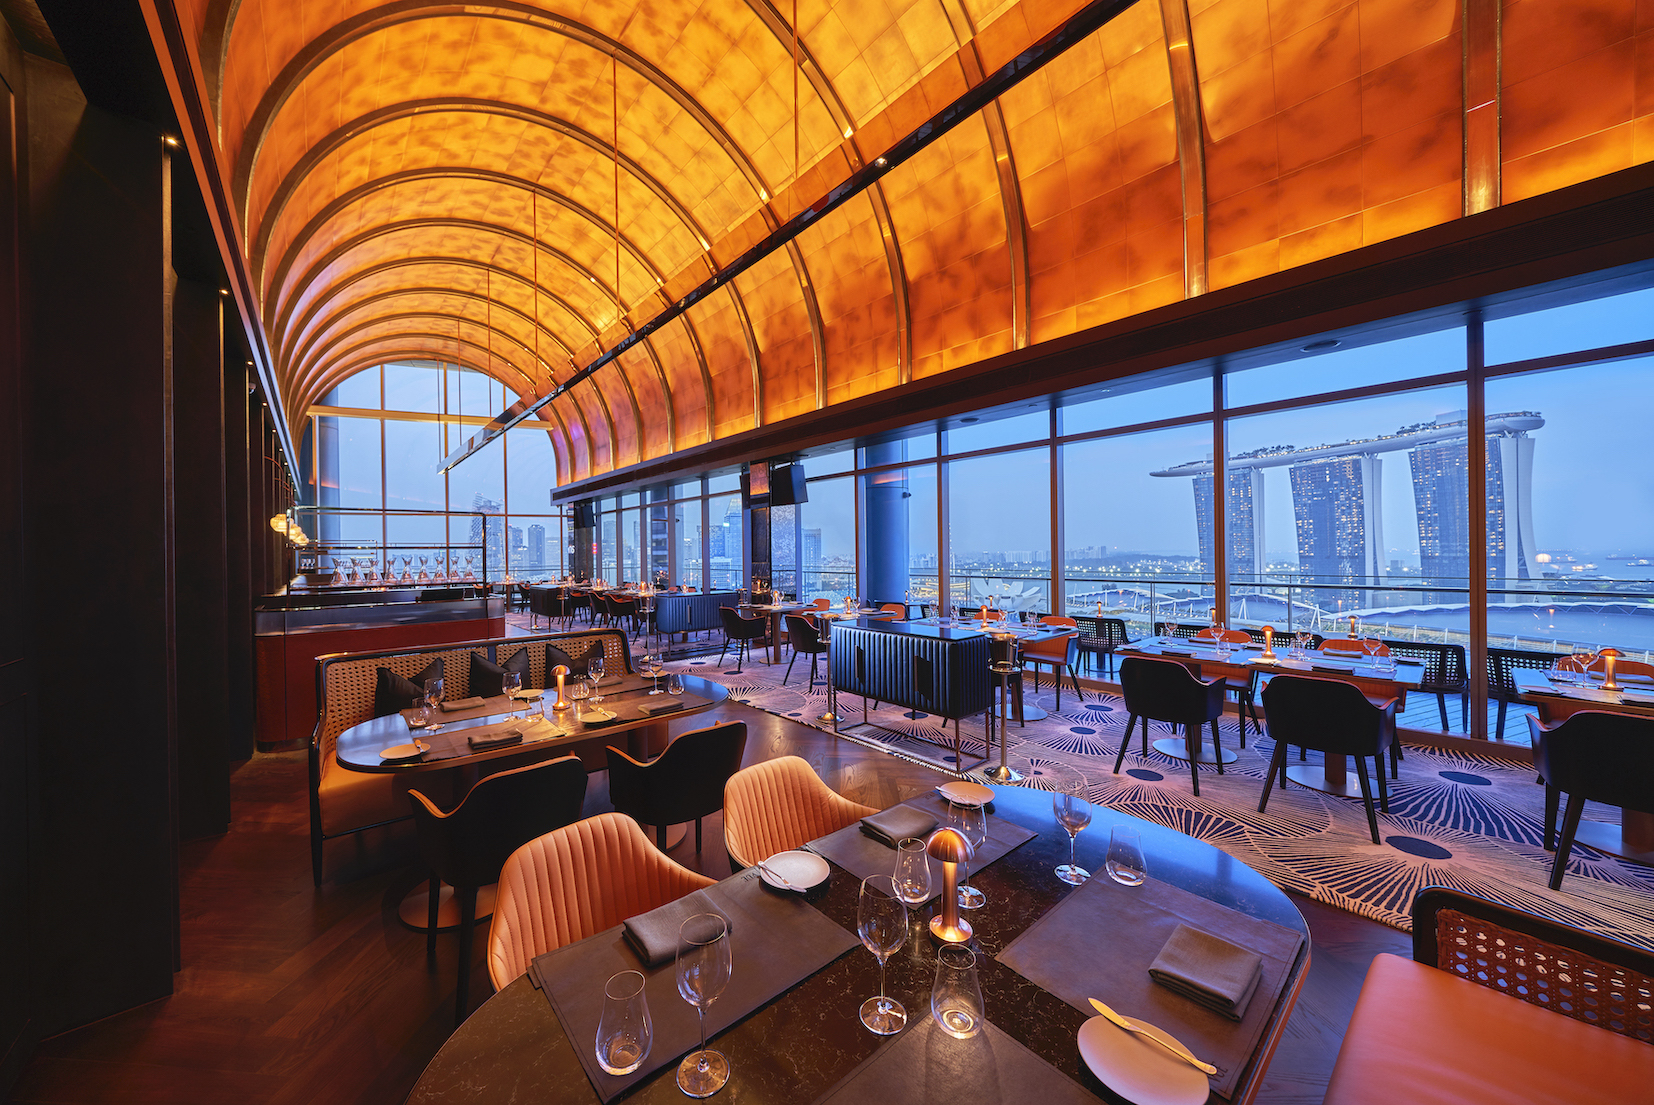 The restaurants with the best views of Singapore